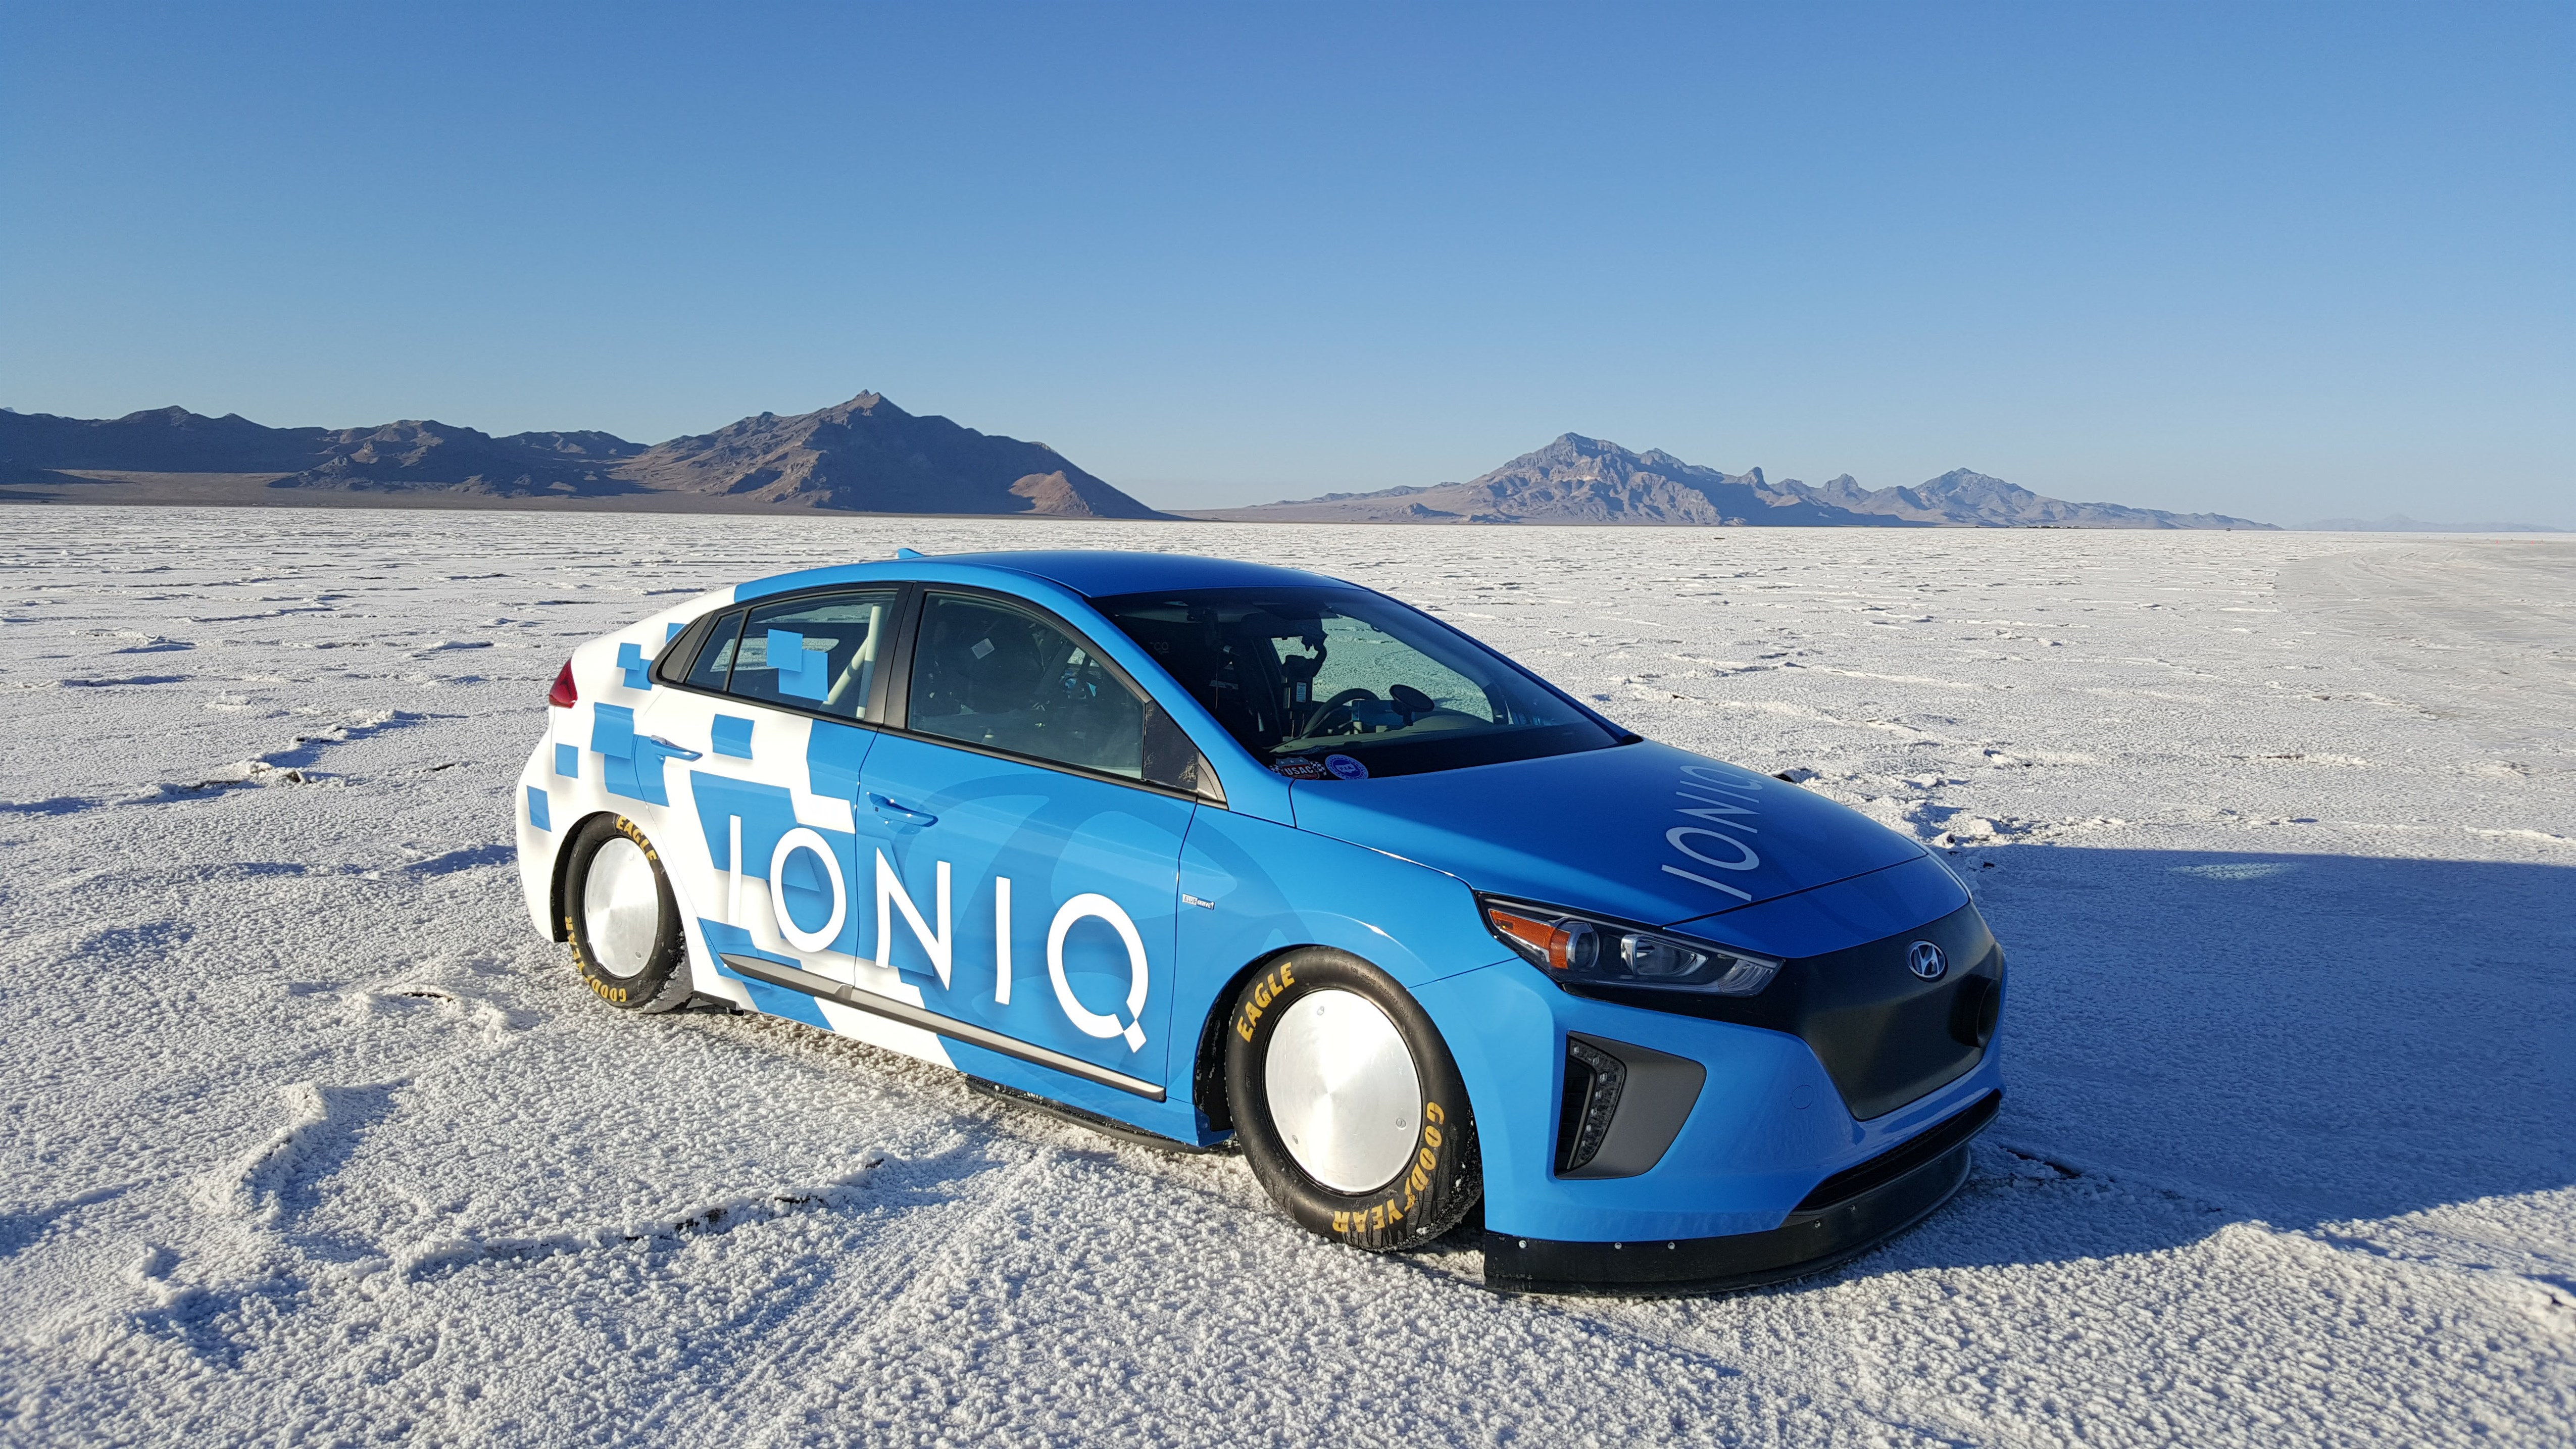 production-based hybrid vehicle land speed record: 157.825 mph in a